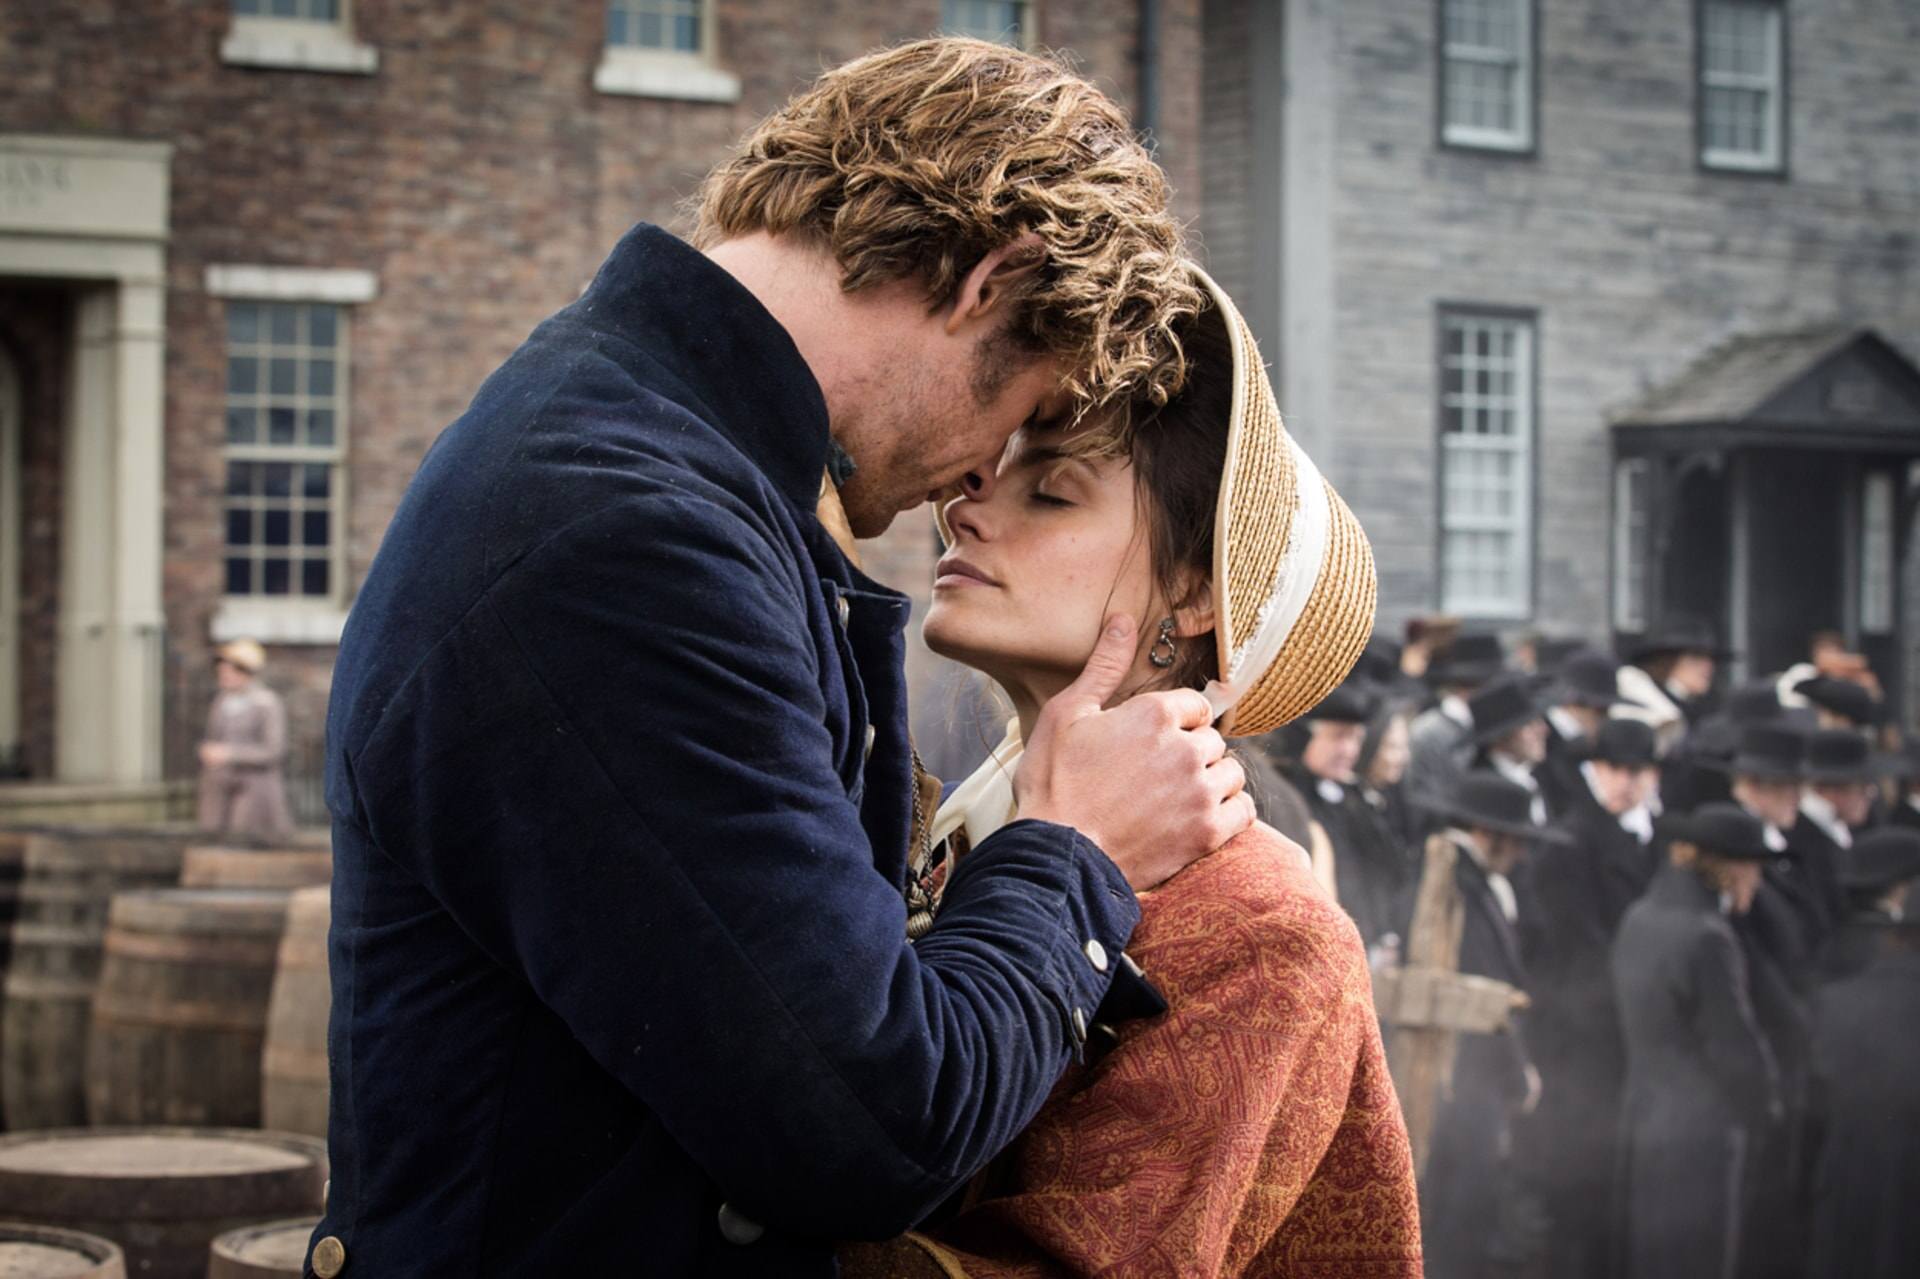 """CHRIS HEMSWORTH as Owen Chase and CHARLOTTE RILEY as Peggy Chase in Warner Bros. Pictures' and Village Roadshow Pictures' action adventure """"IN THE HEART OF THE SEA,"""" distributed worldwide by Warner Bros. Pictures and in select territories by Village Roadshow Pictures."""